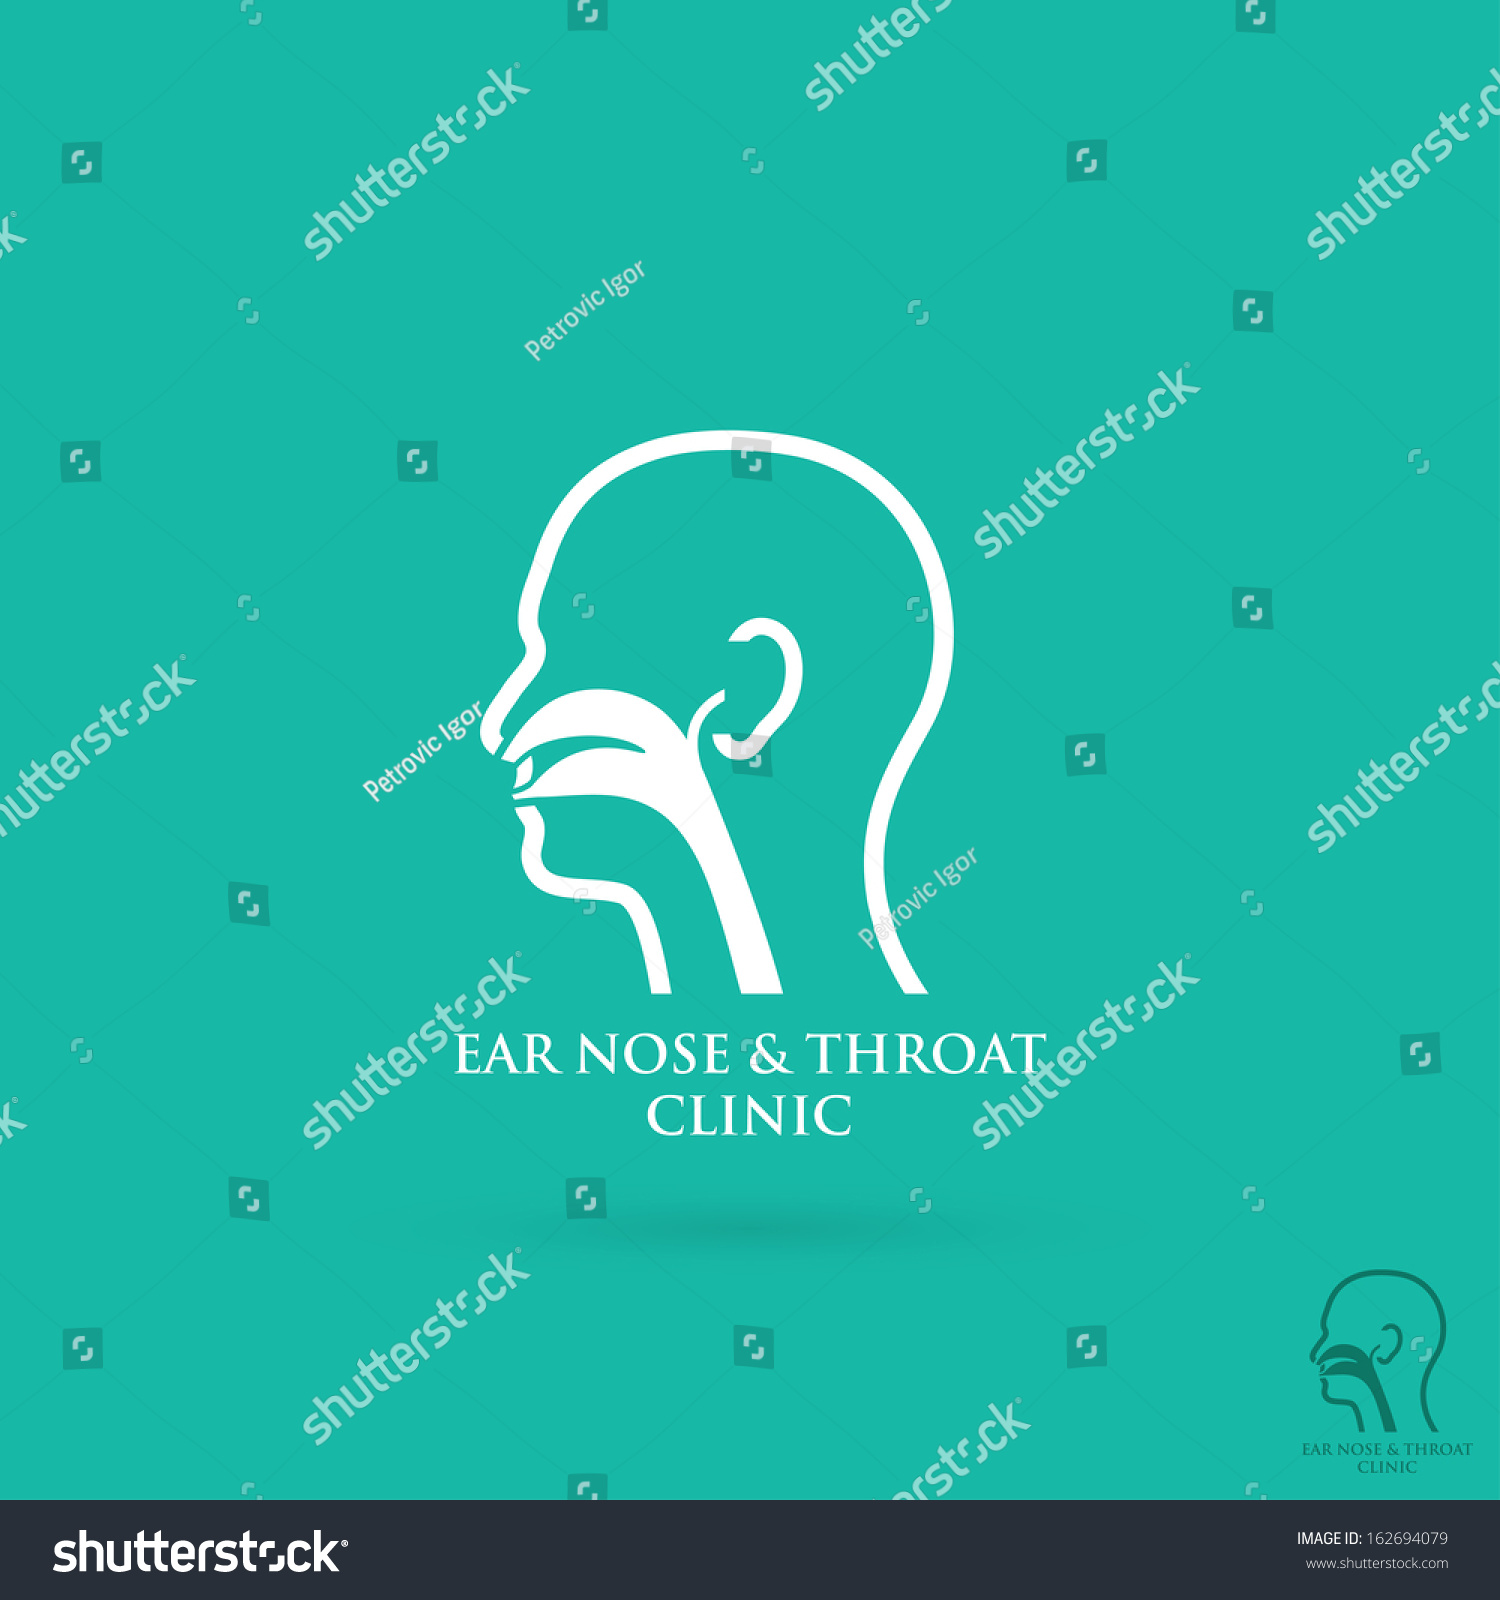 Ear nose and throat clinic winchester va yoga